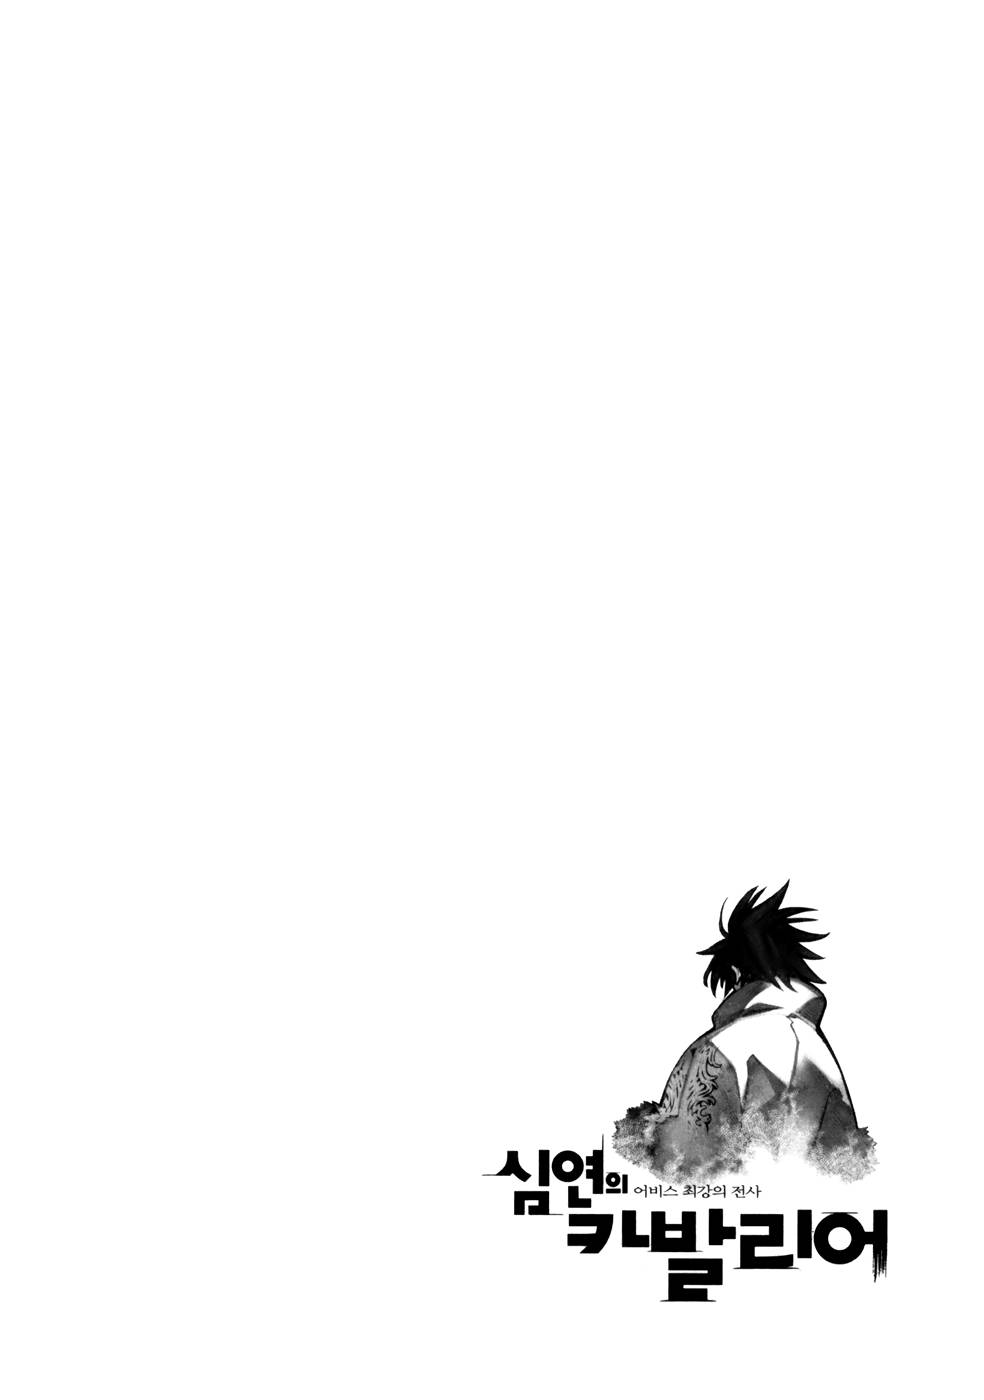 Read Cavalier Of The Abyss Chapter 15